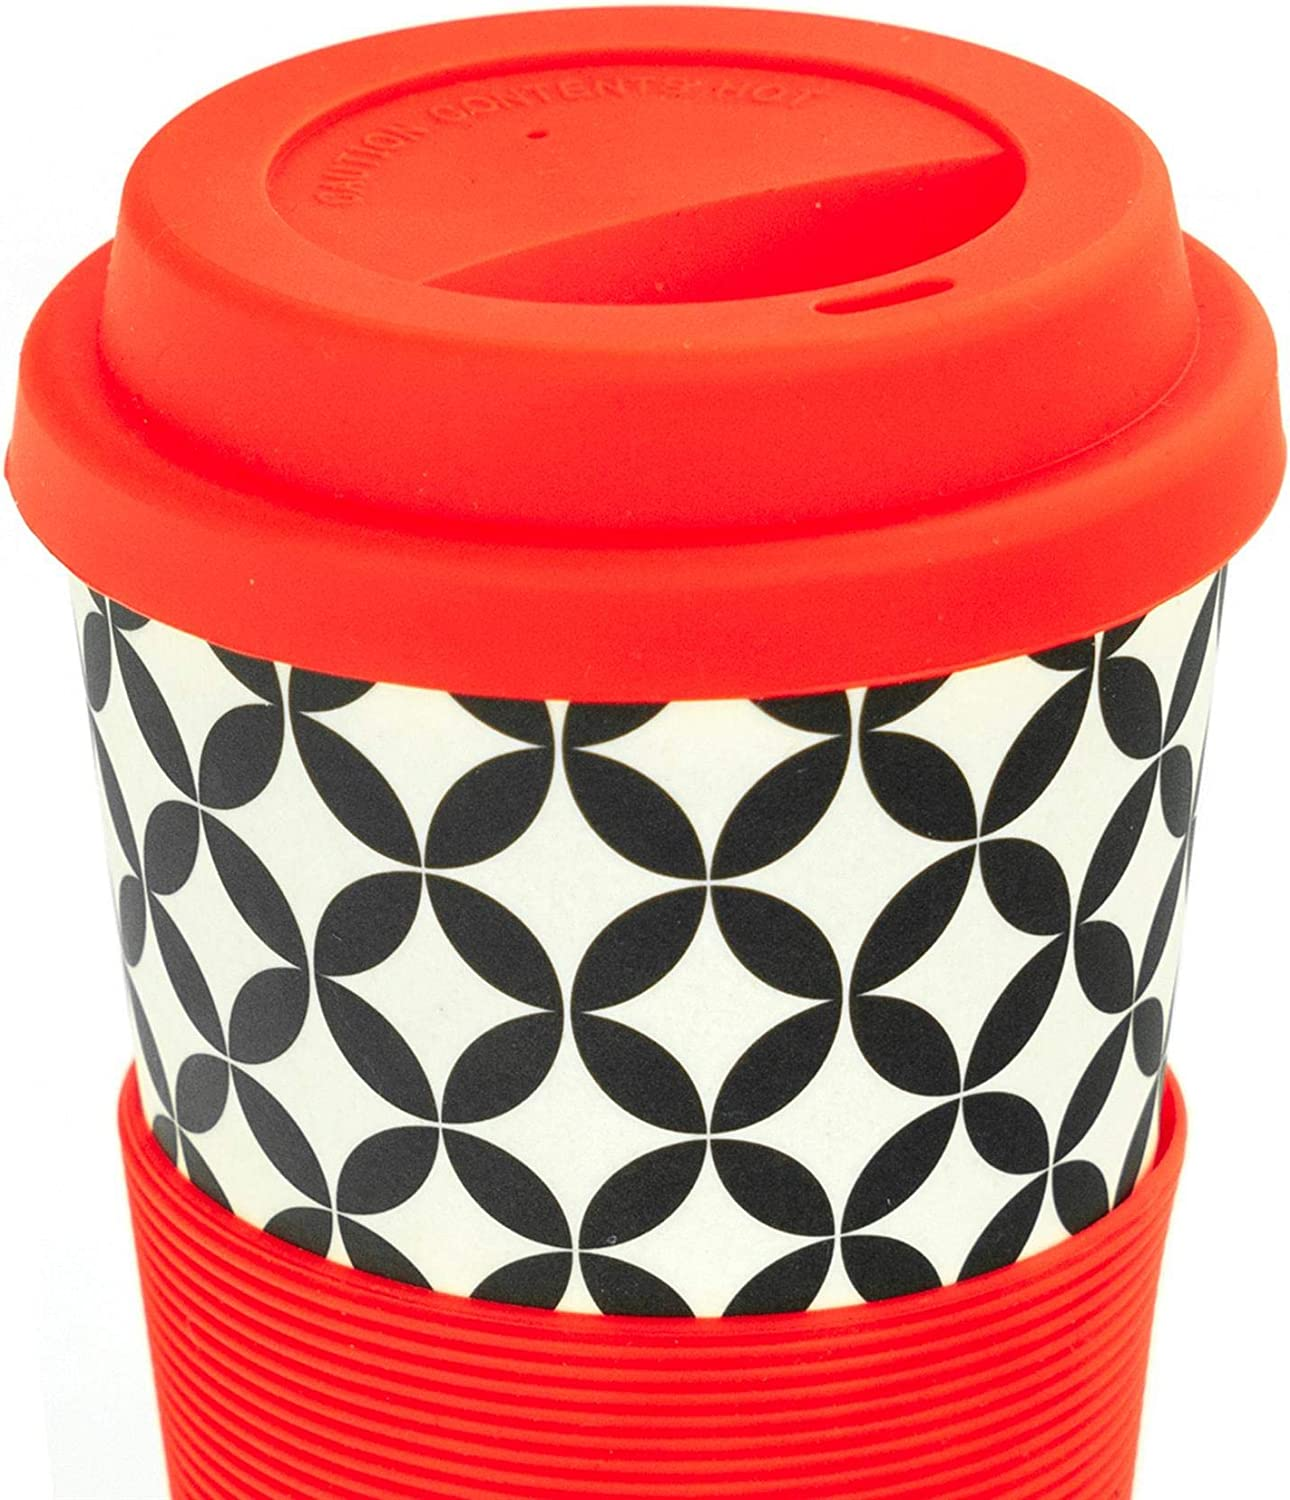 400ml Blue Aztec Leaf Rink Drink Bamboo Reusable Coffee Cup with Silicone Lid /& Sleeve